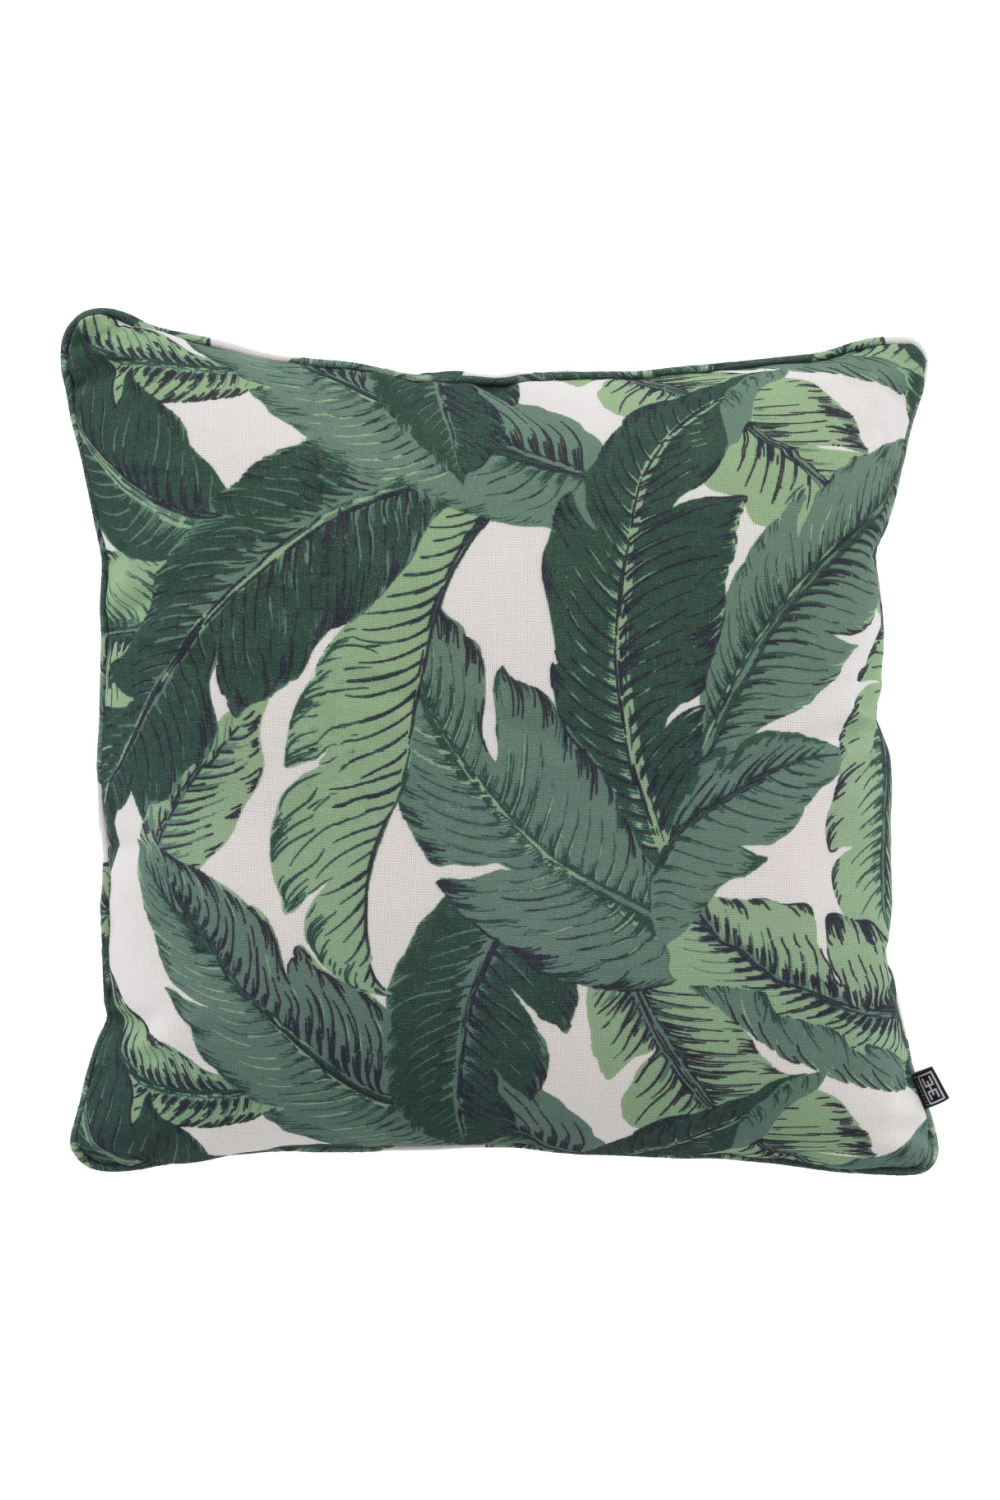 Green Leaf Pillow | Eichholtz Mustique L